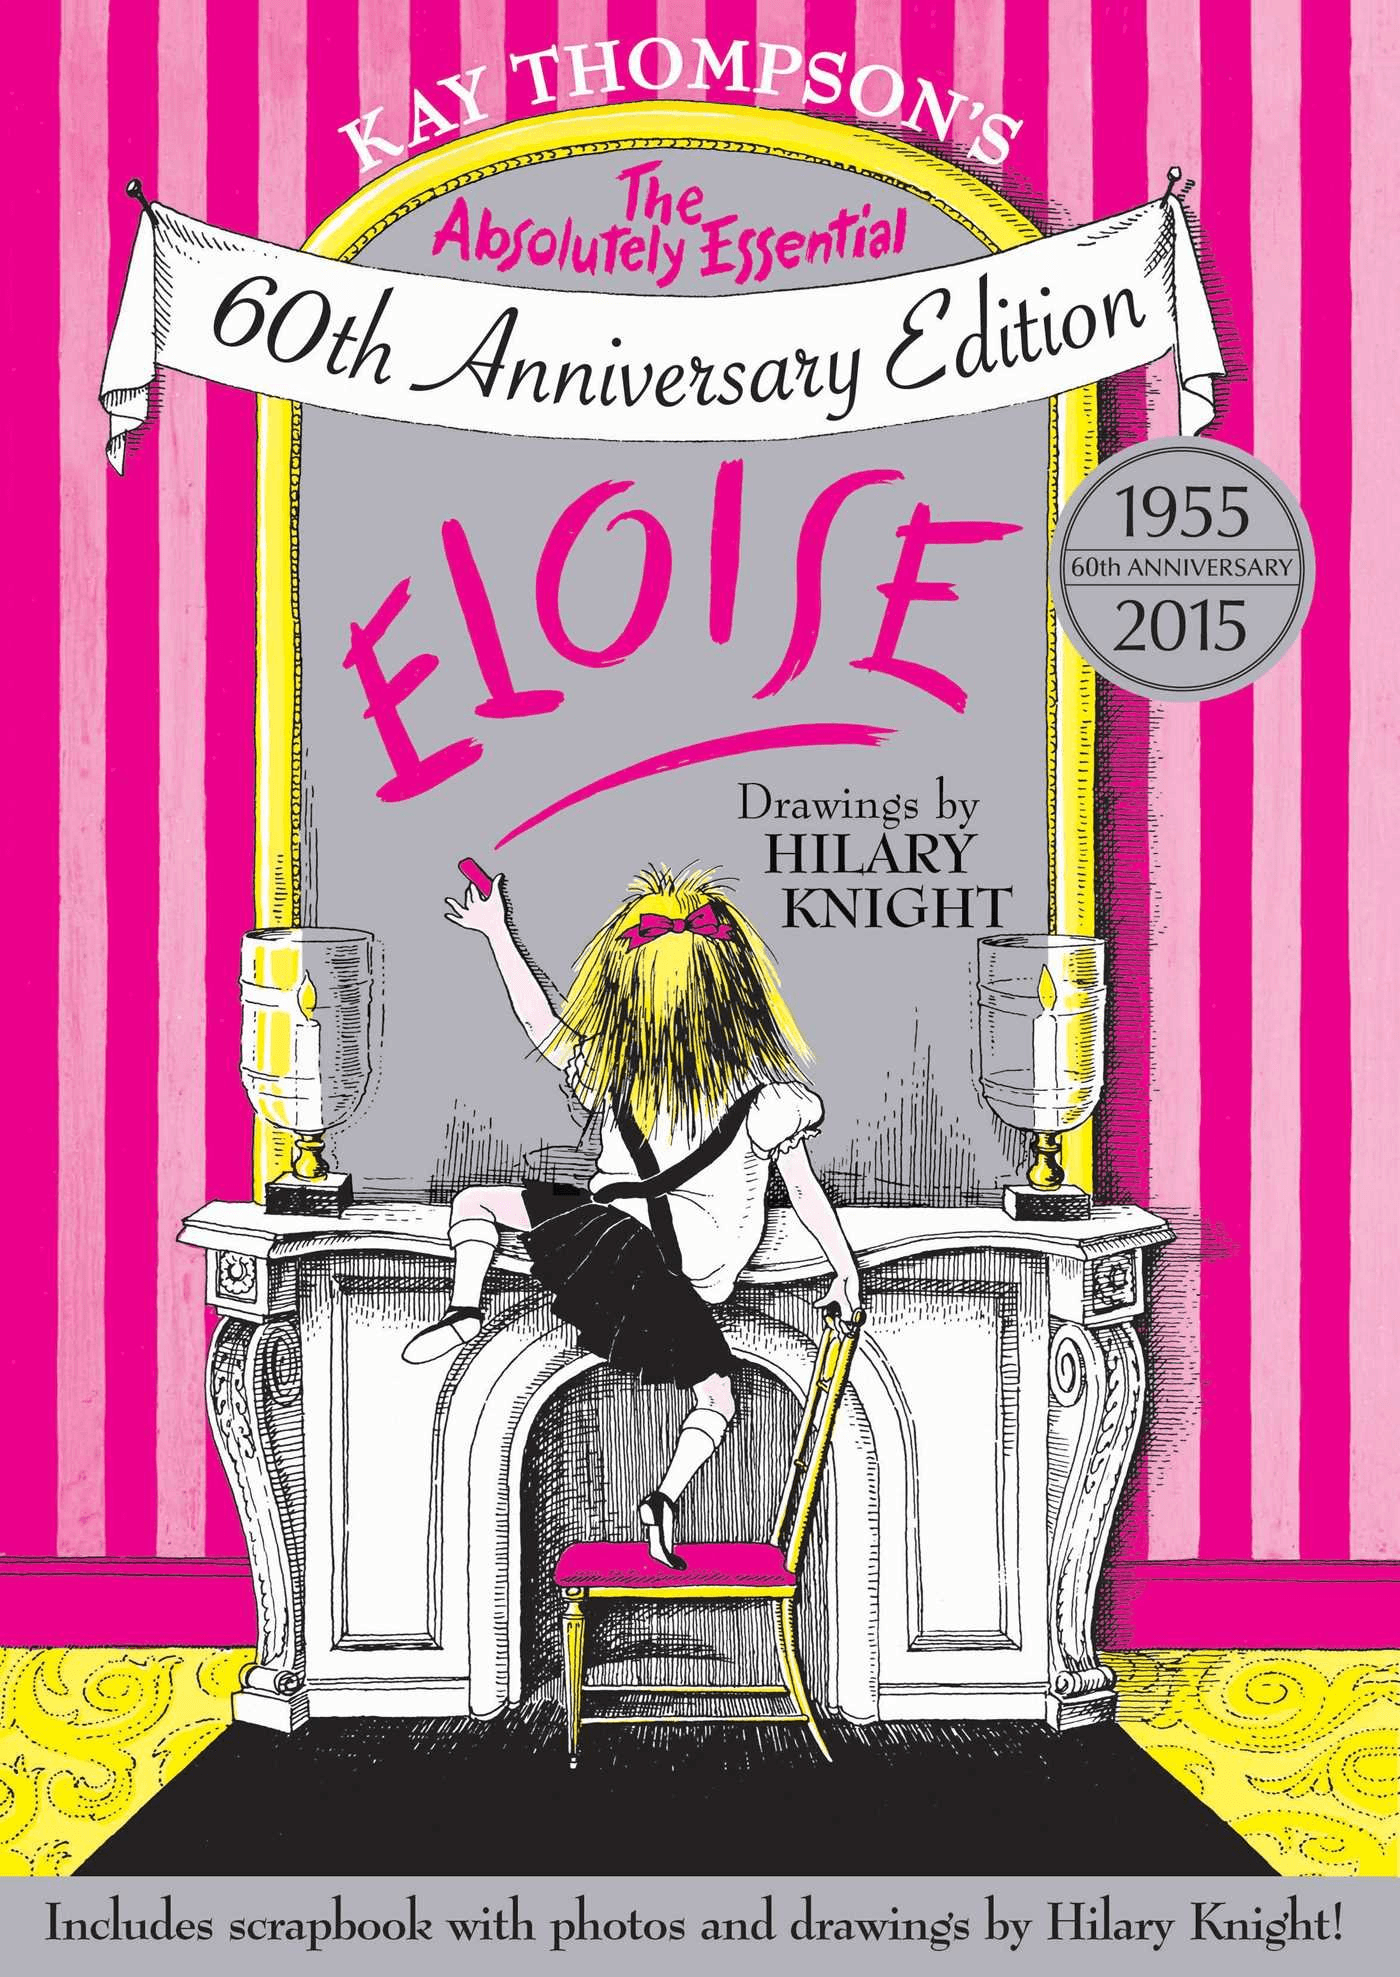 Eloise is turning 60! To celebrate, get your copy of Eloise: The Absolutely Essential 60th Anniversary Edition.